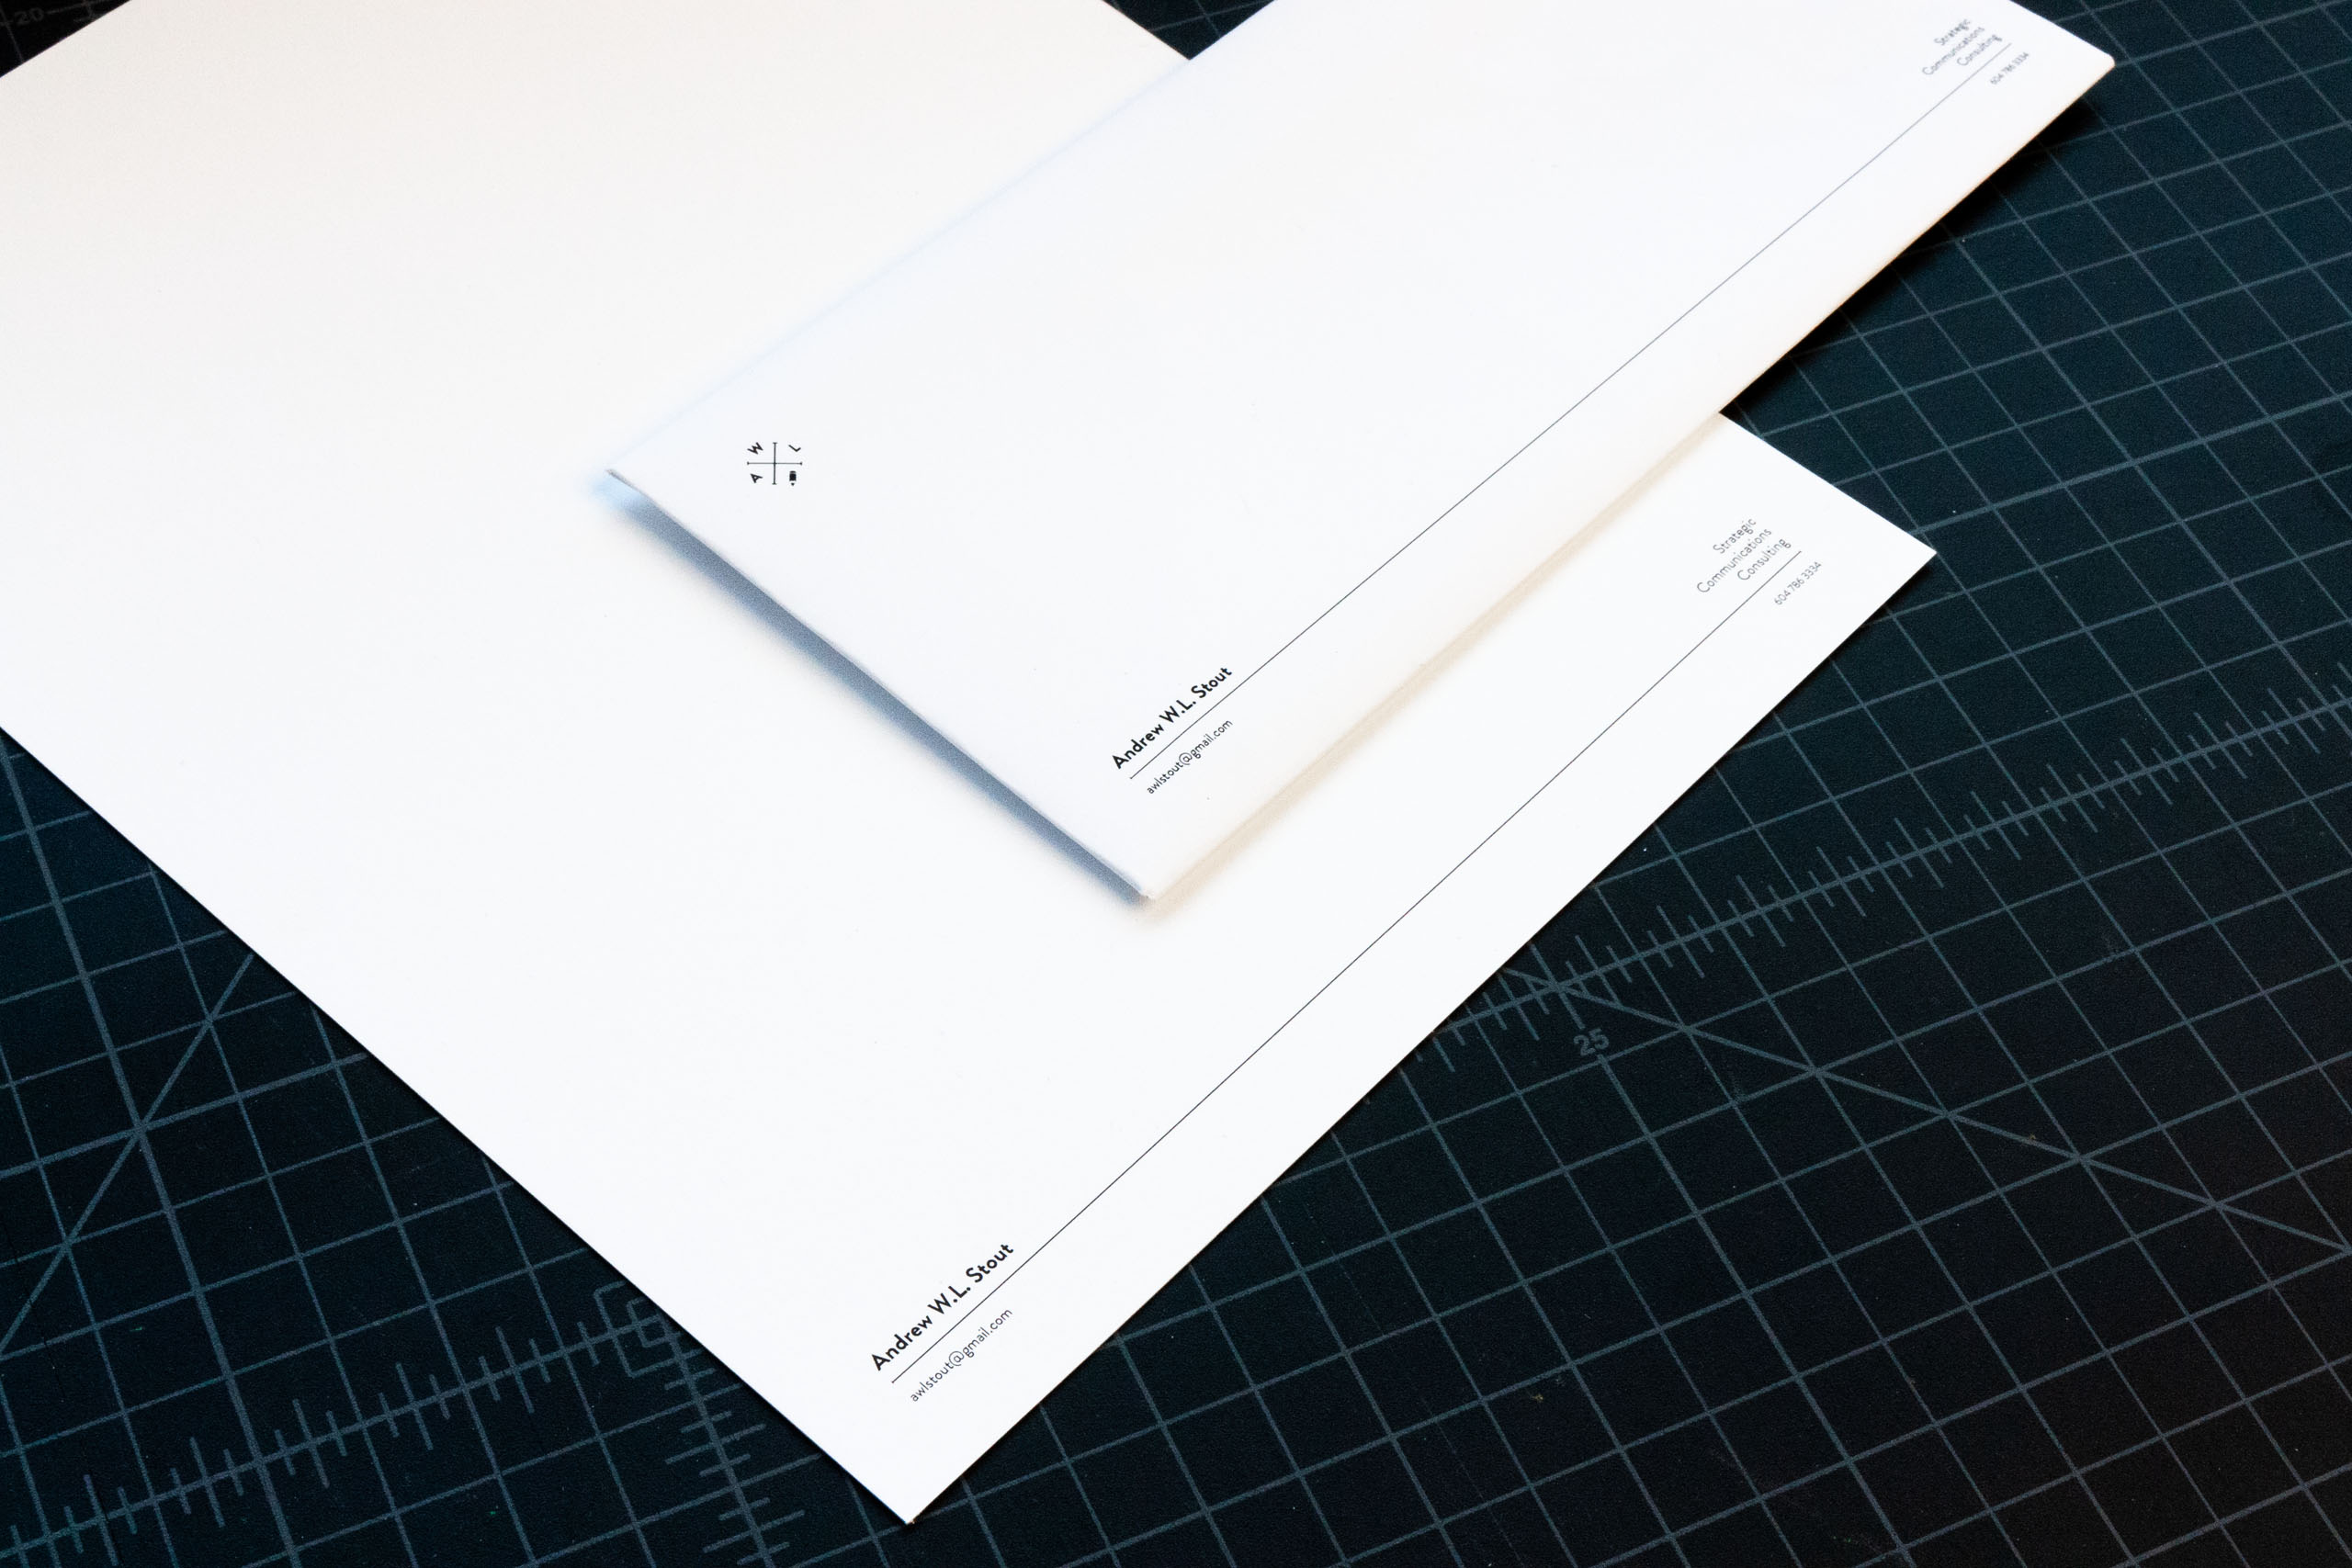 AWL Consulting letterhead and envelope — by Dima Yagnyuk.